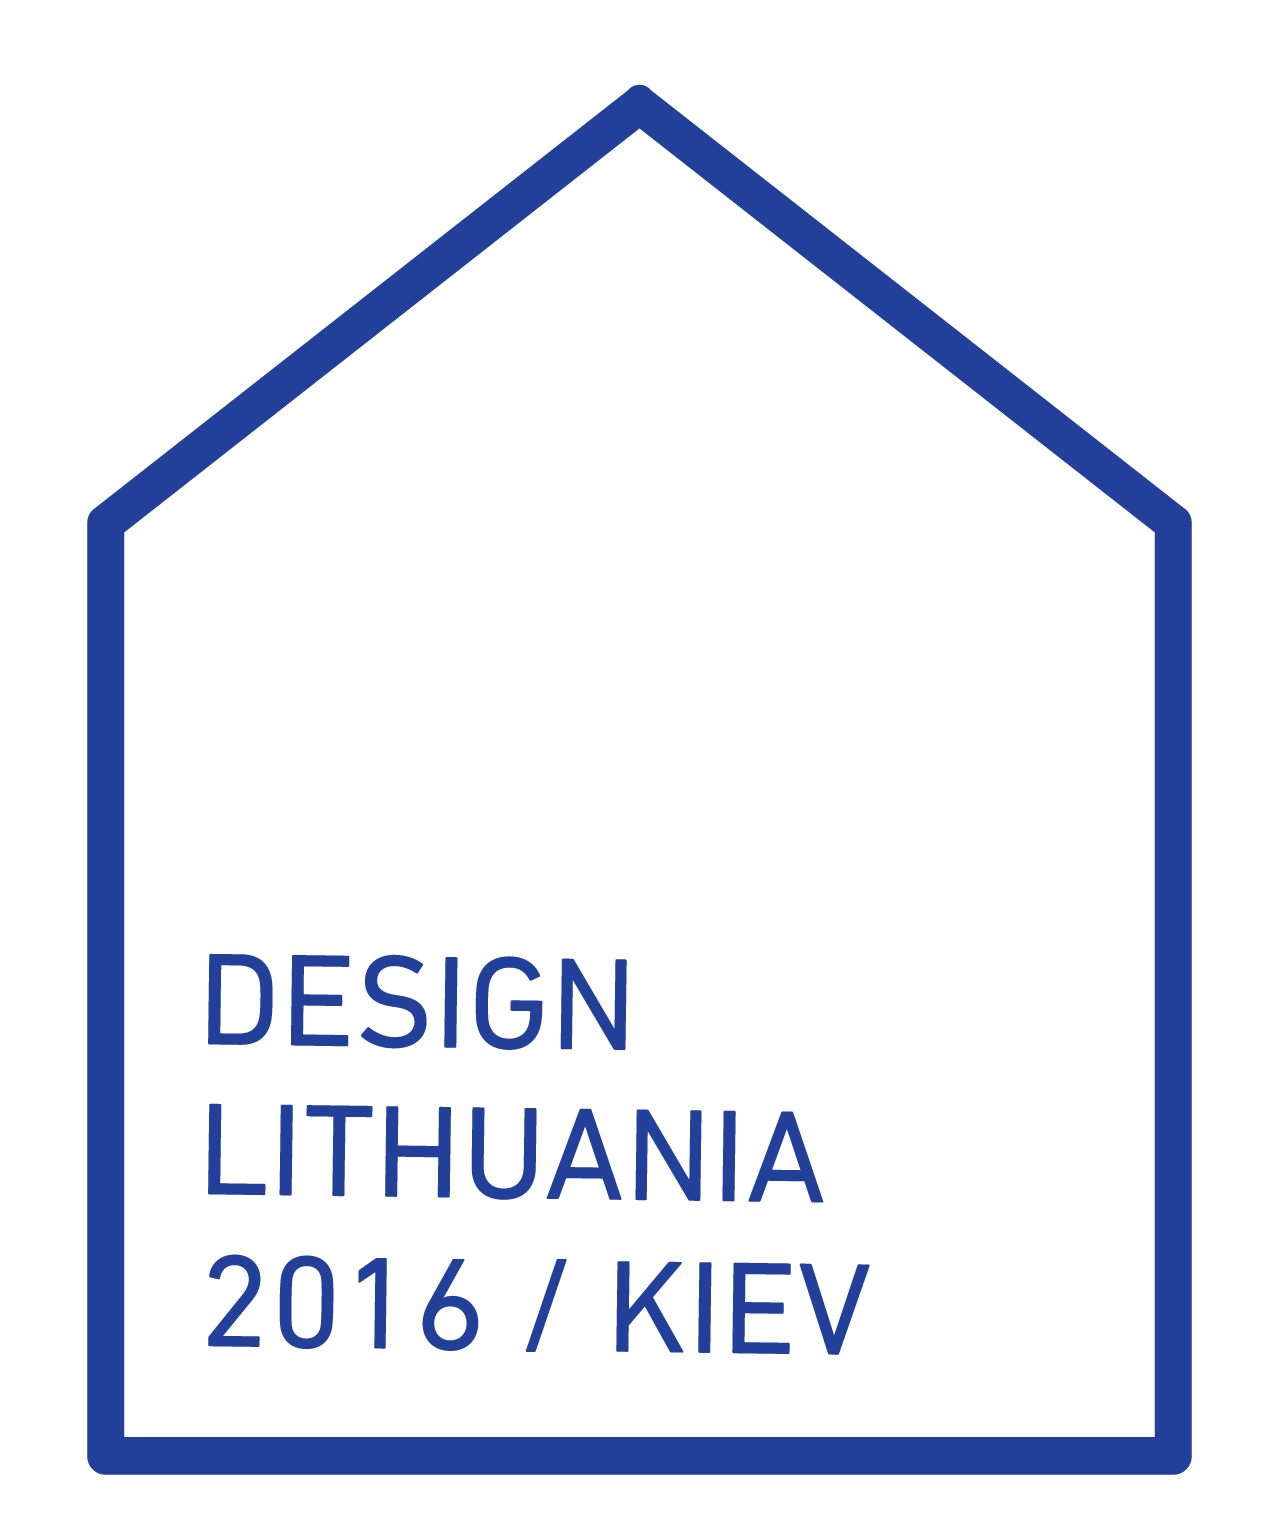 DESIGN LITHUANIA 2016 / KIEV